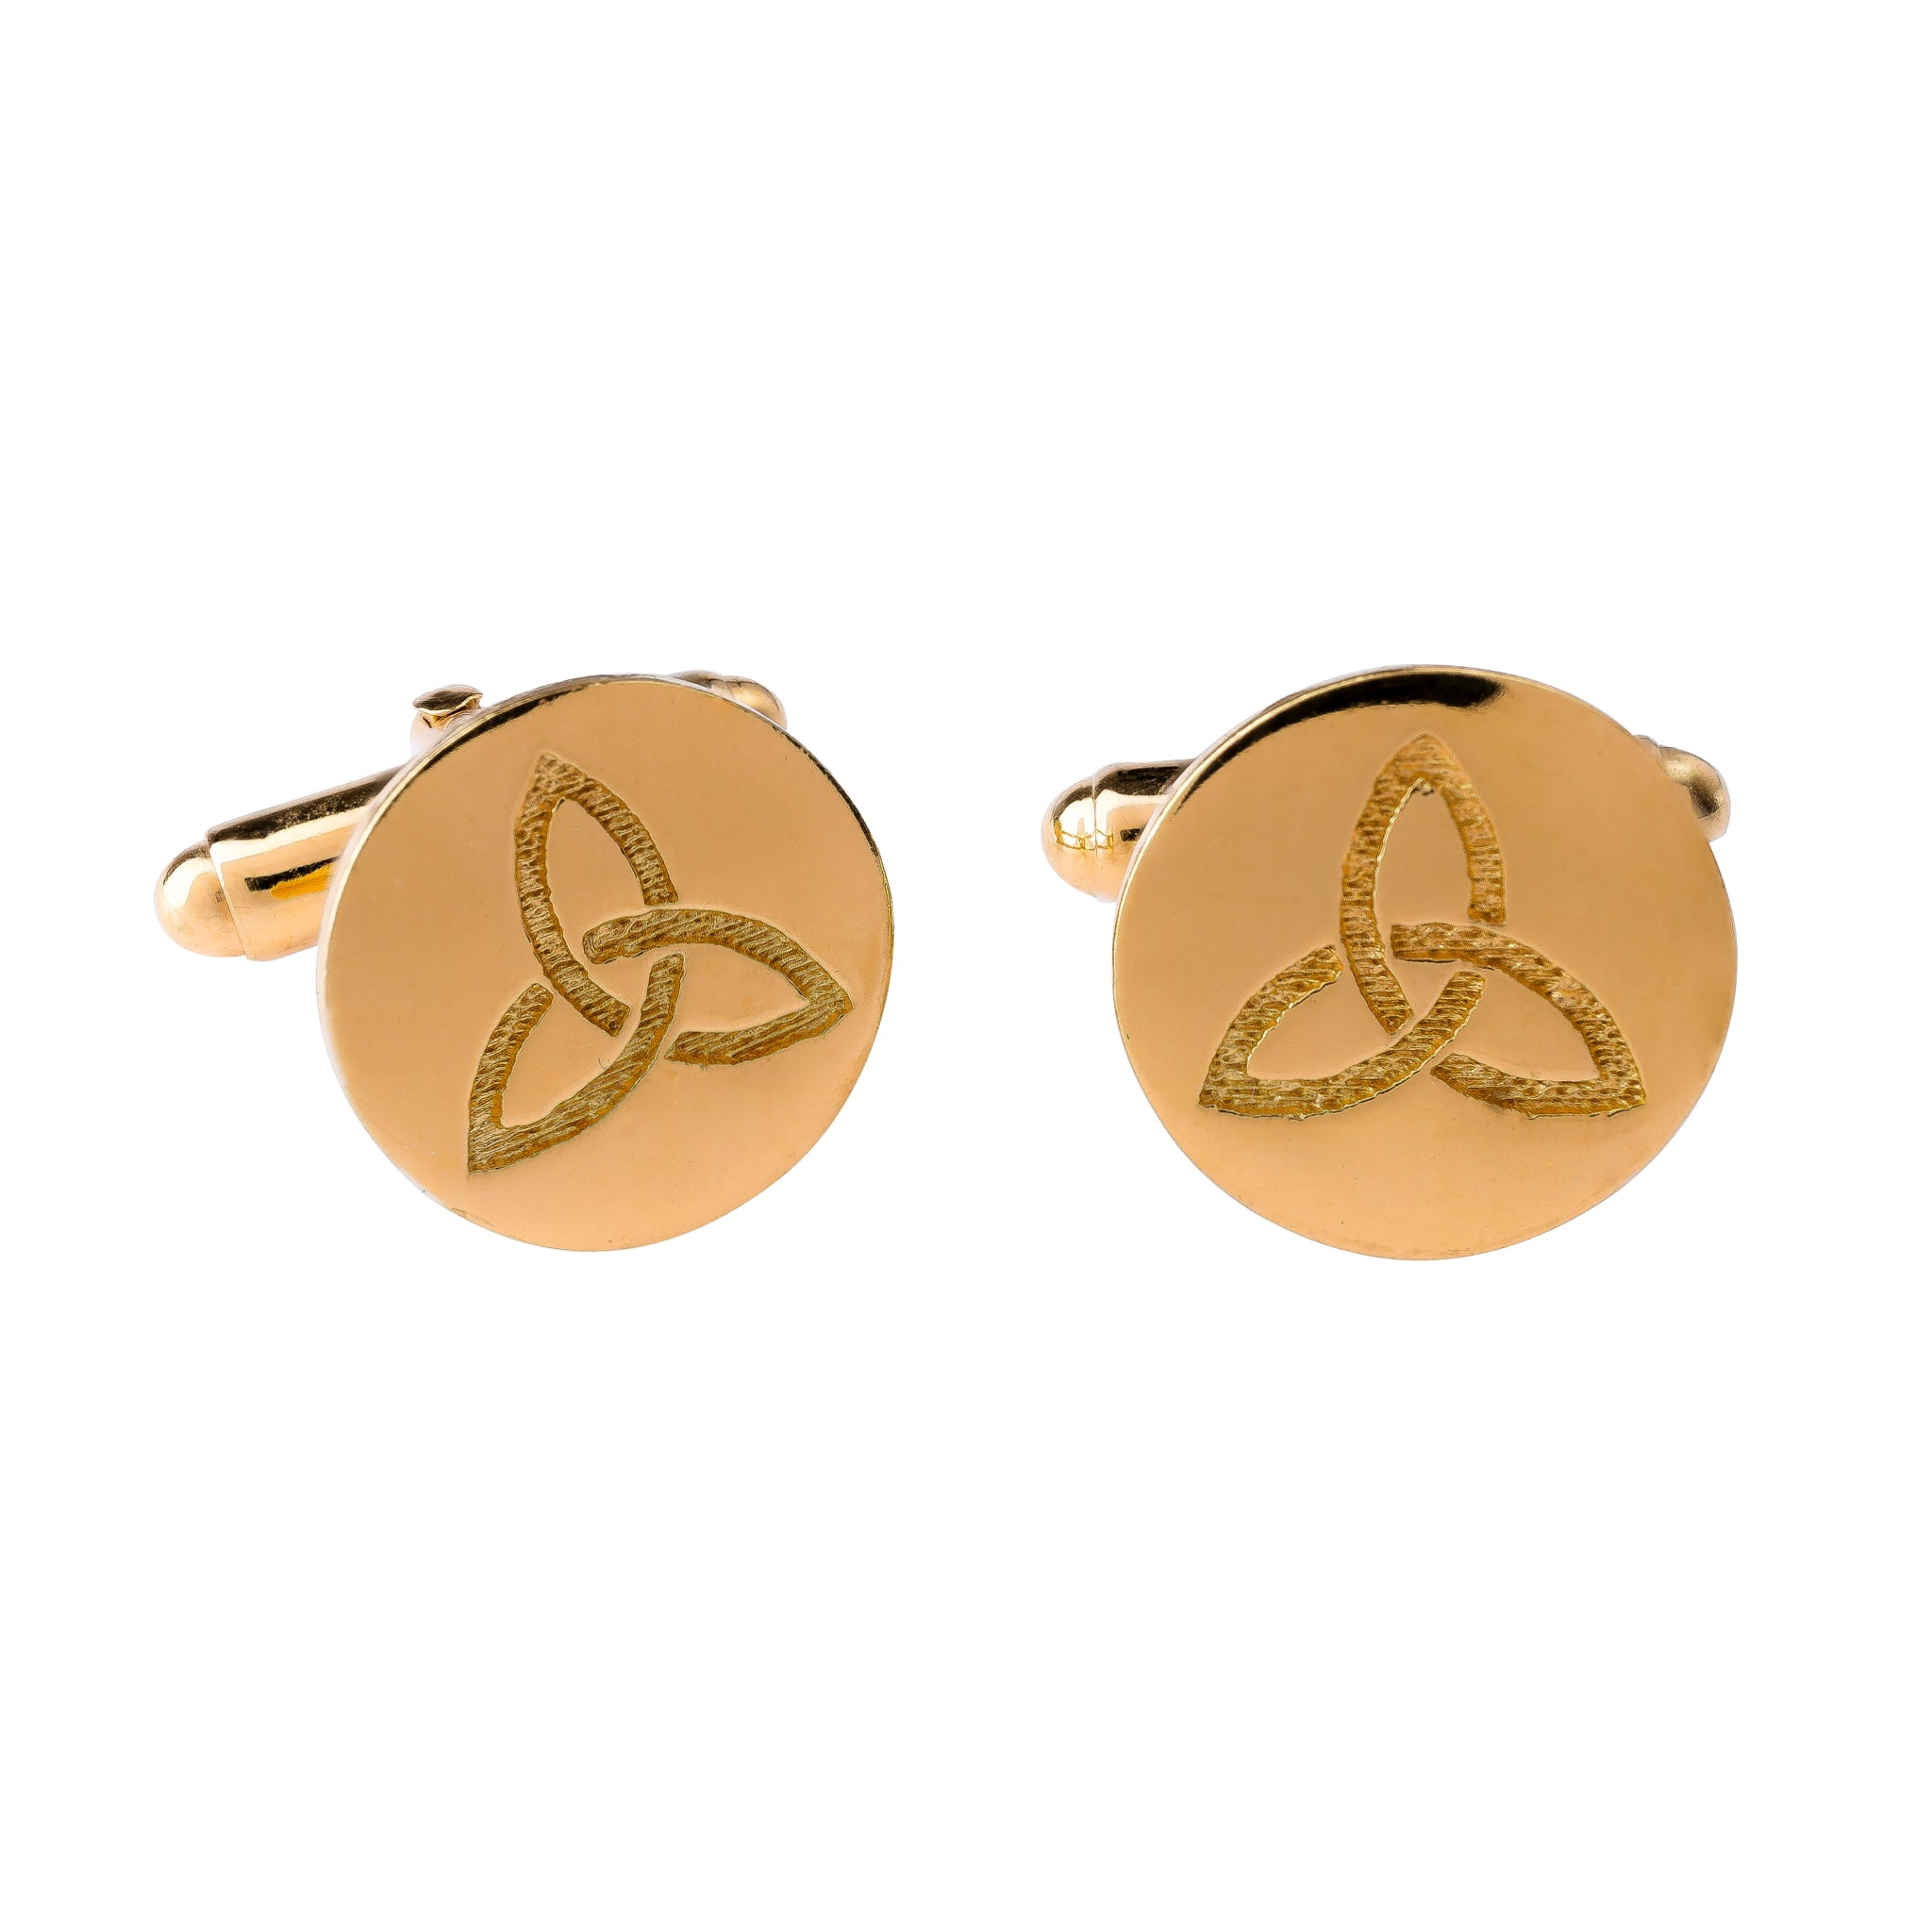 Eternity Gold Cufflinks by Liwu